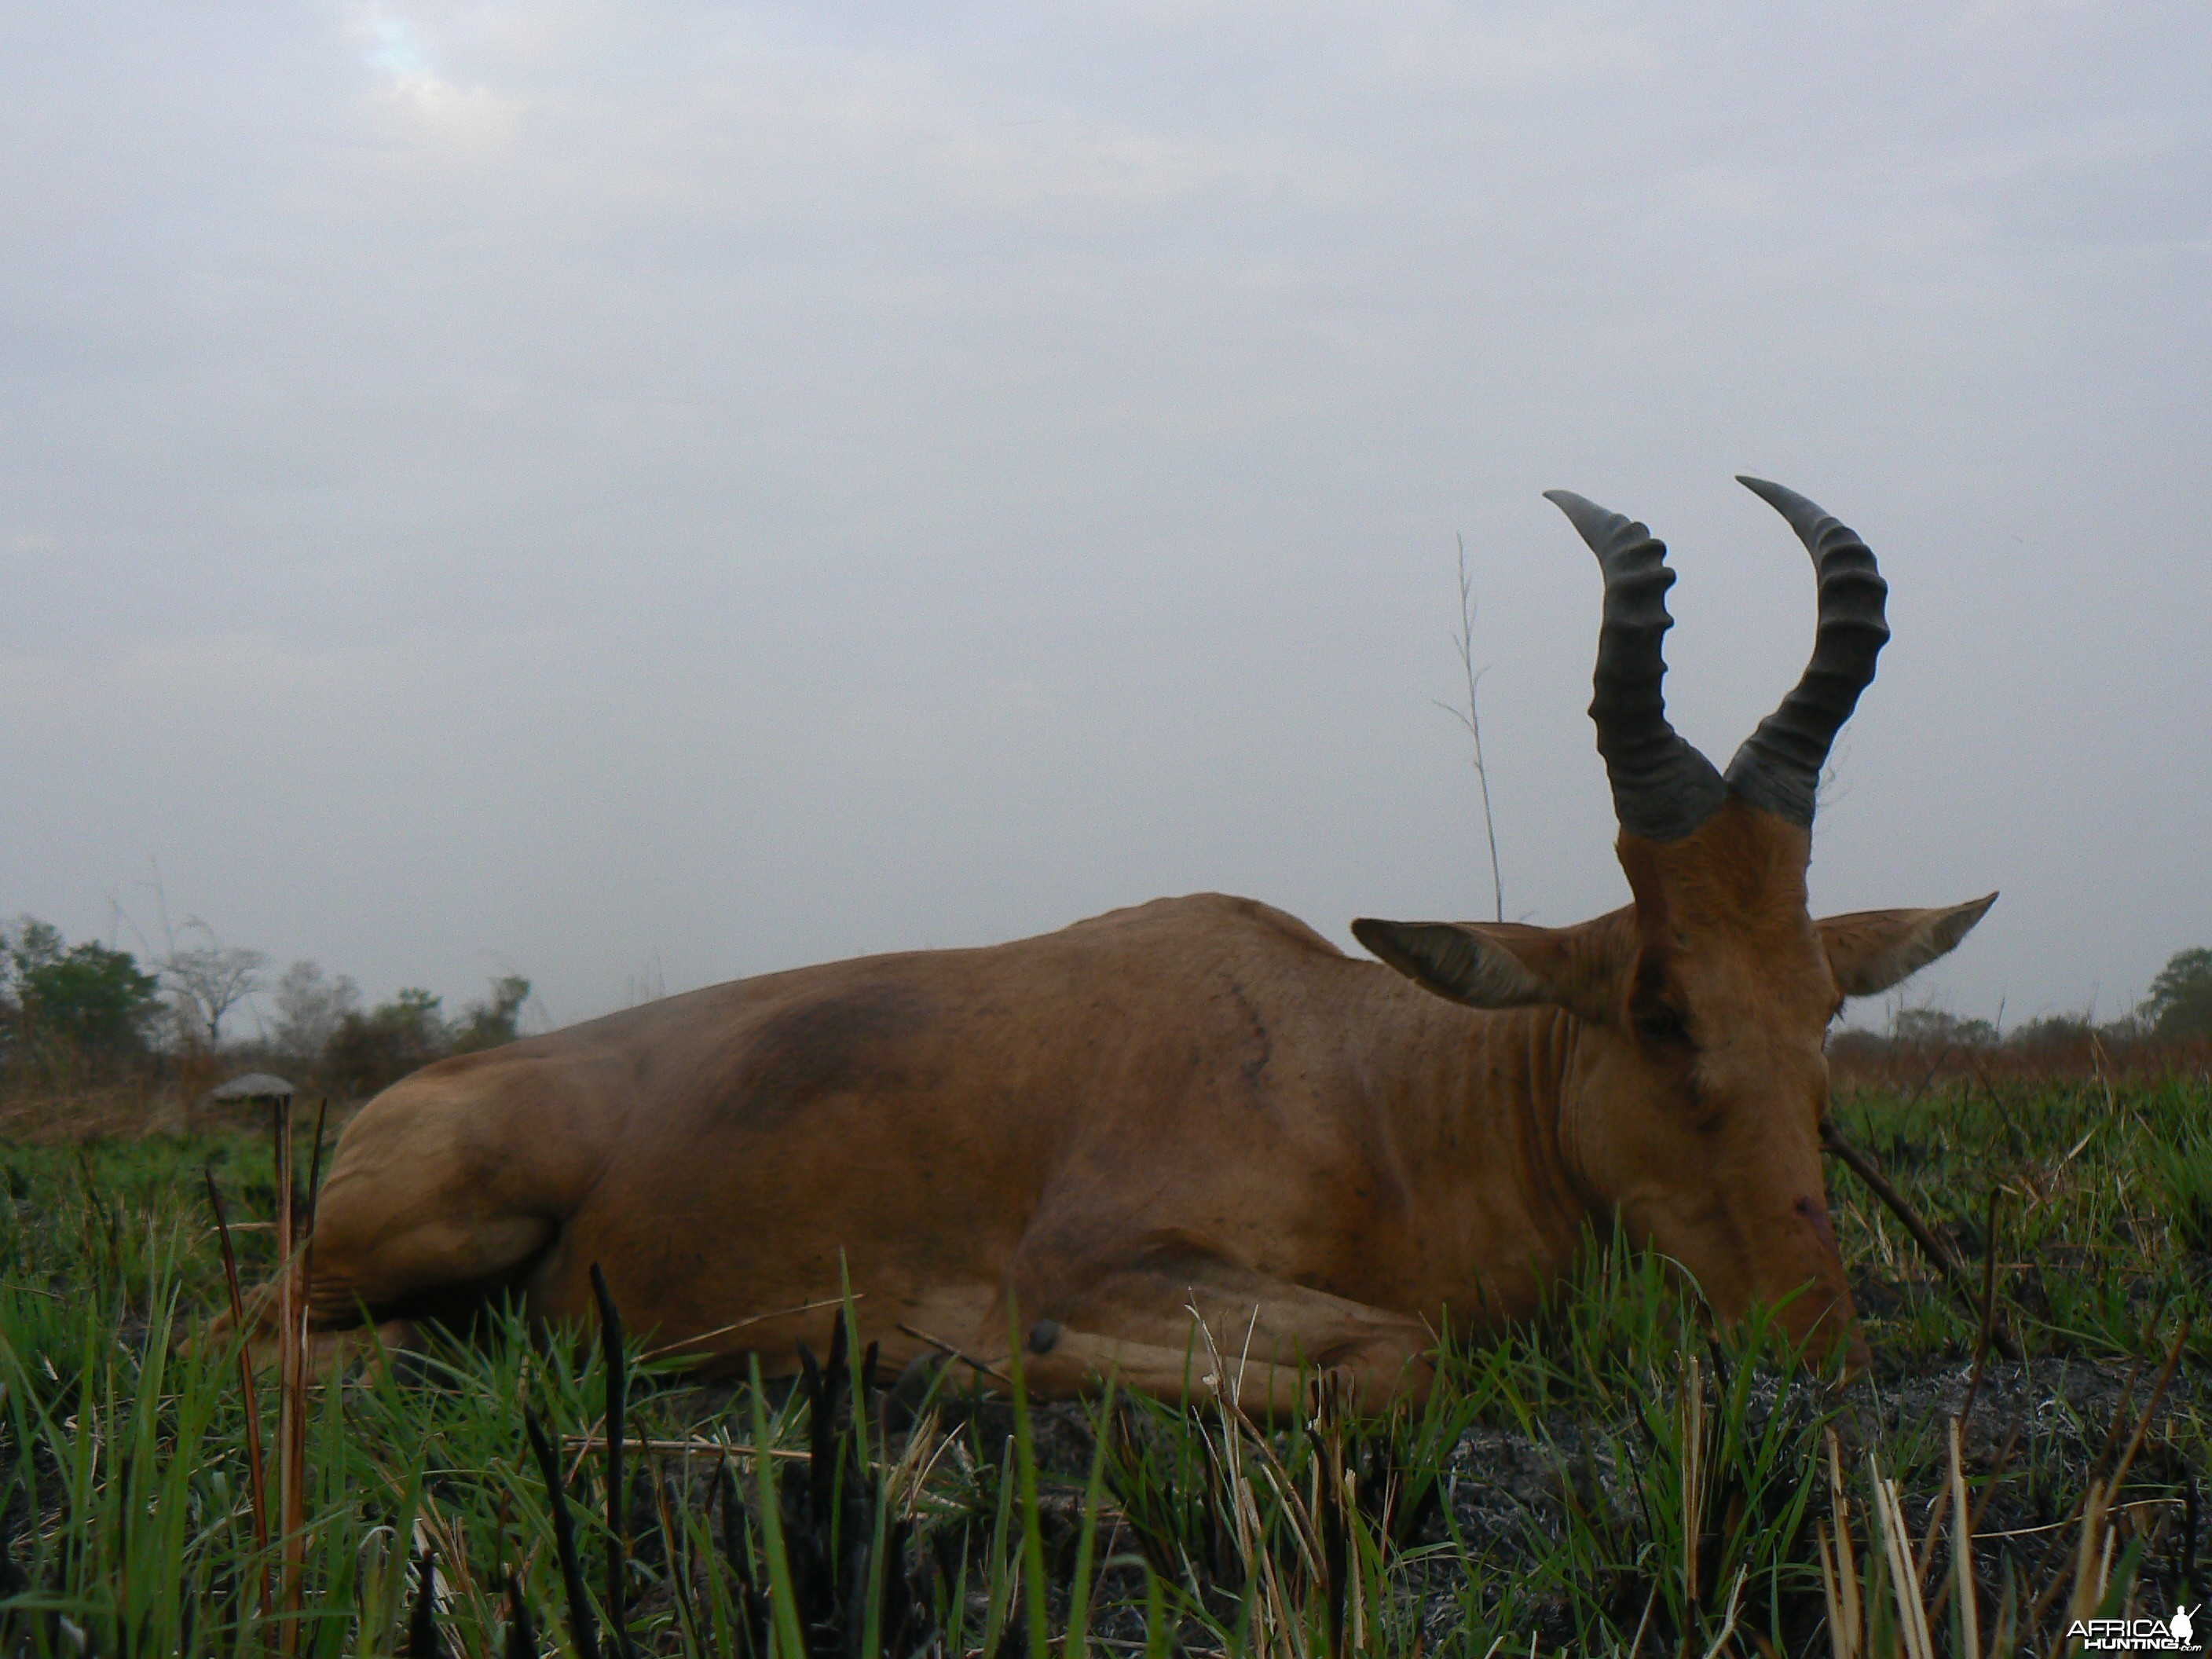 Lelwel hartebeest taken in CAR